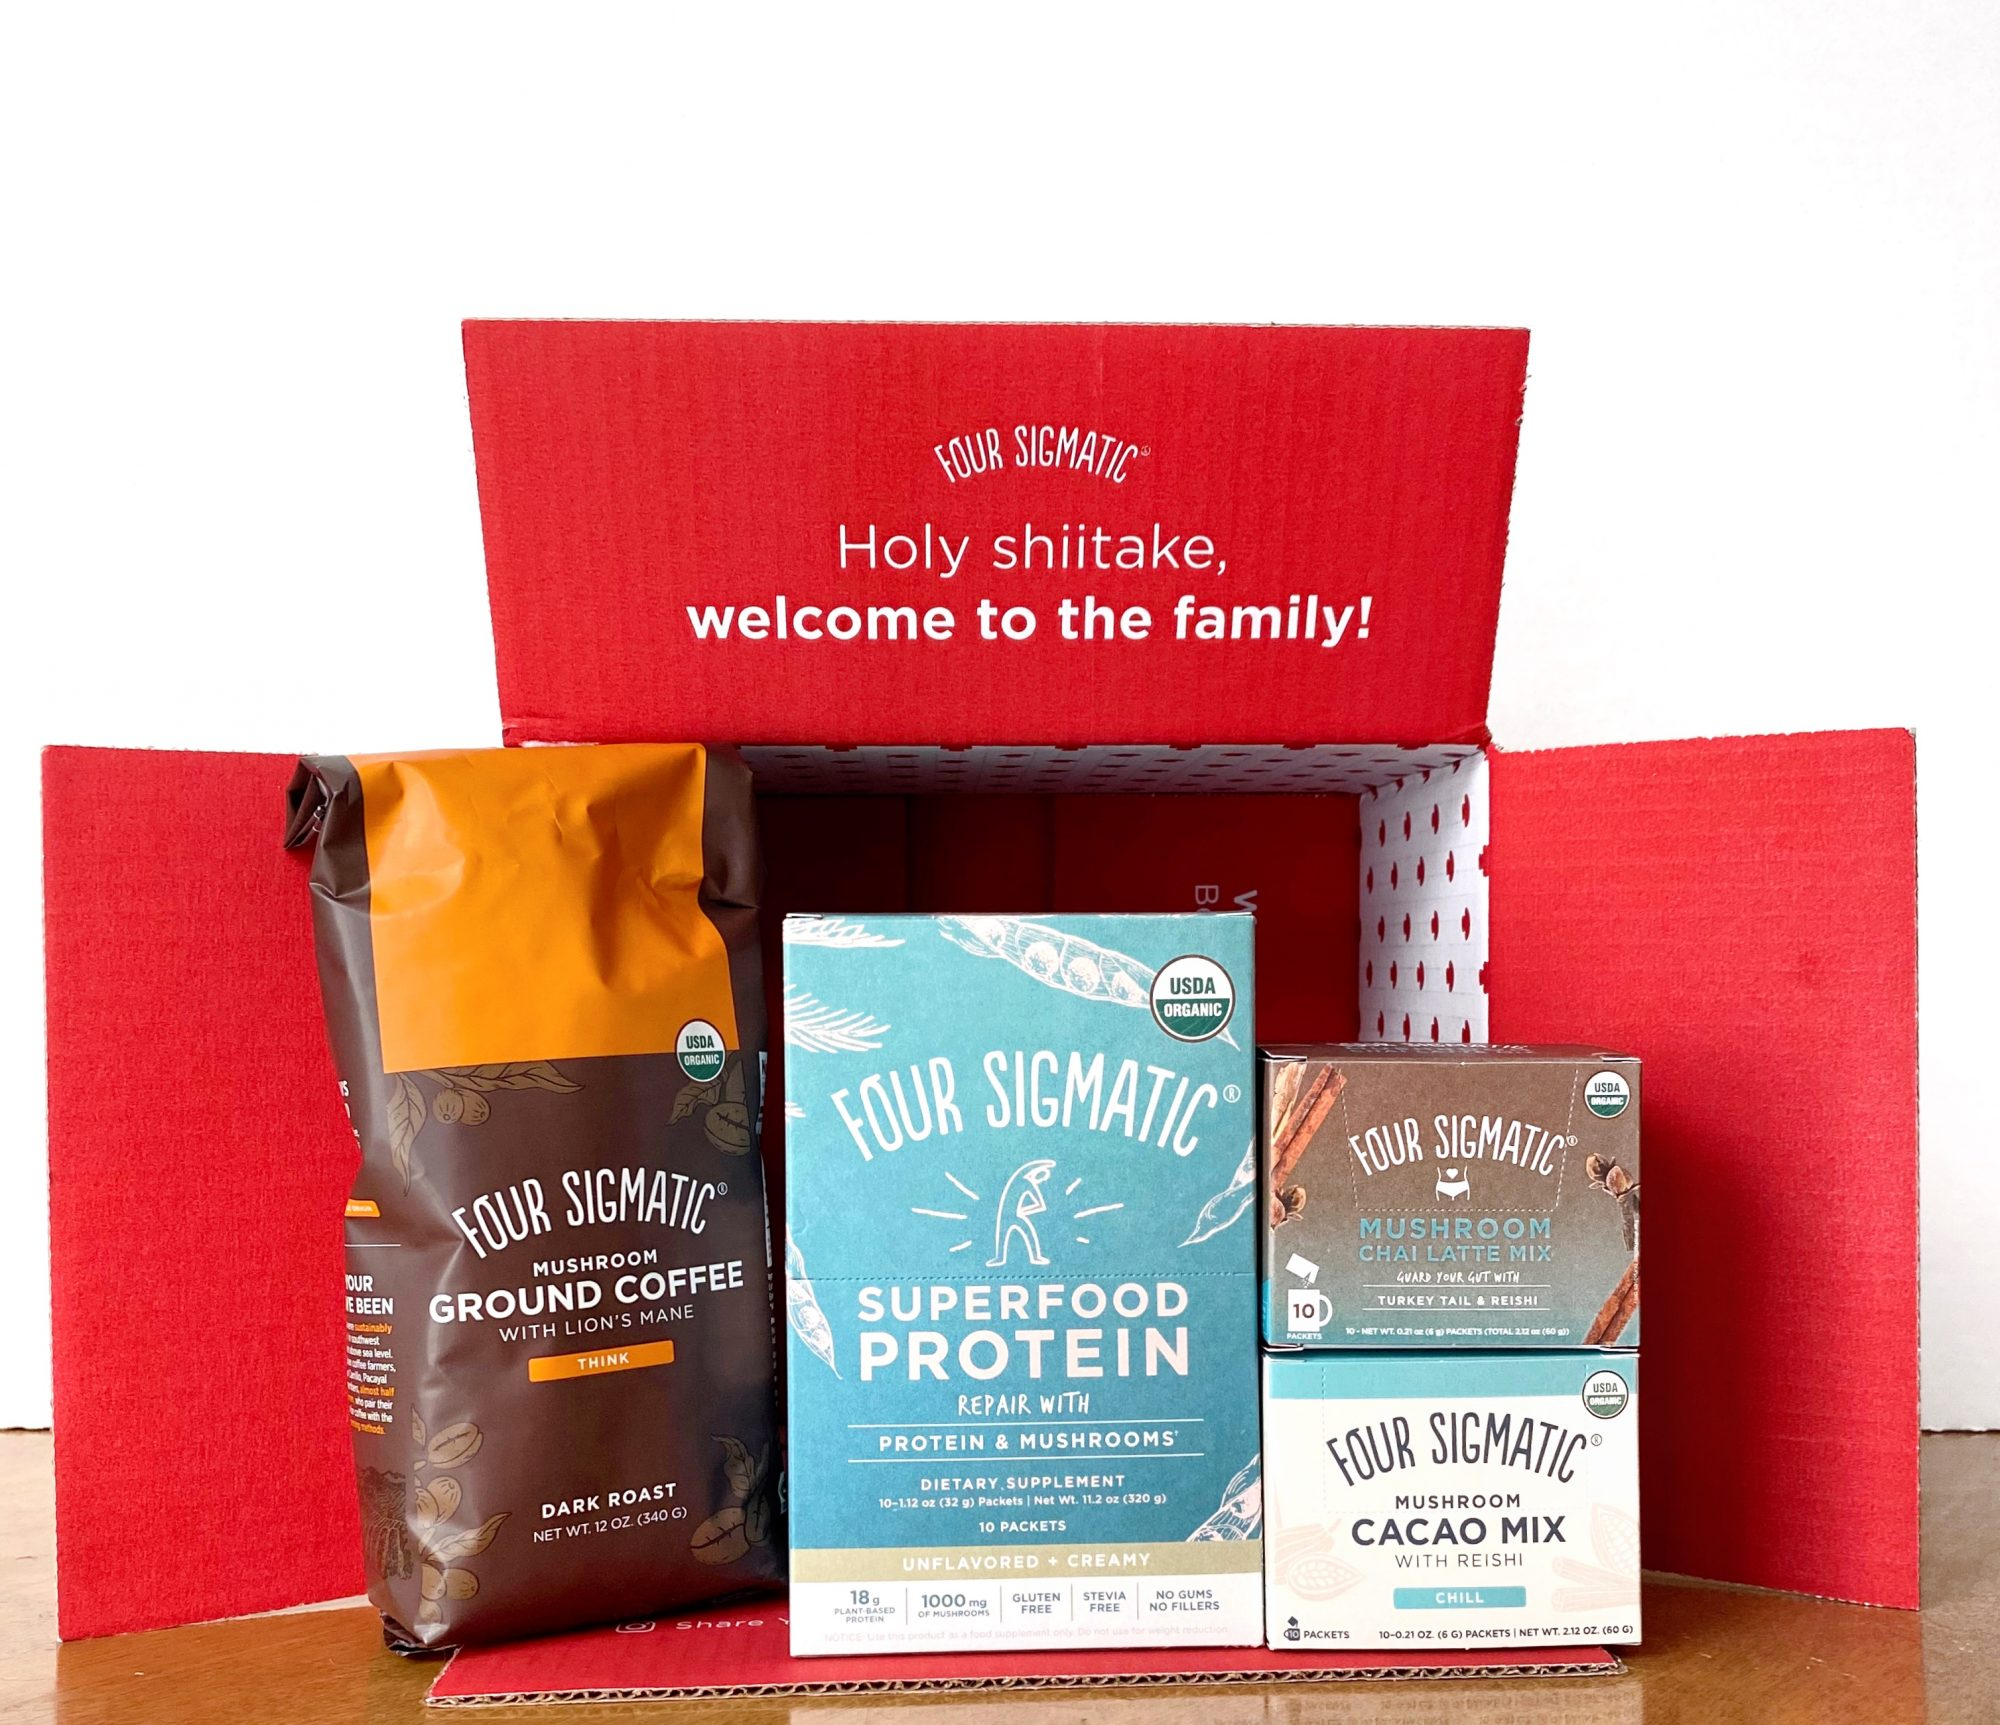 review of Four Sigmatic mushroom coffee and products